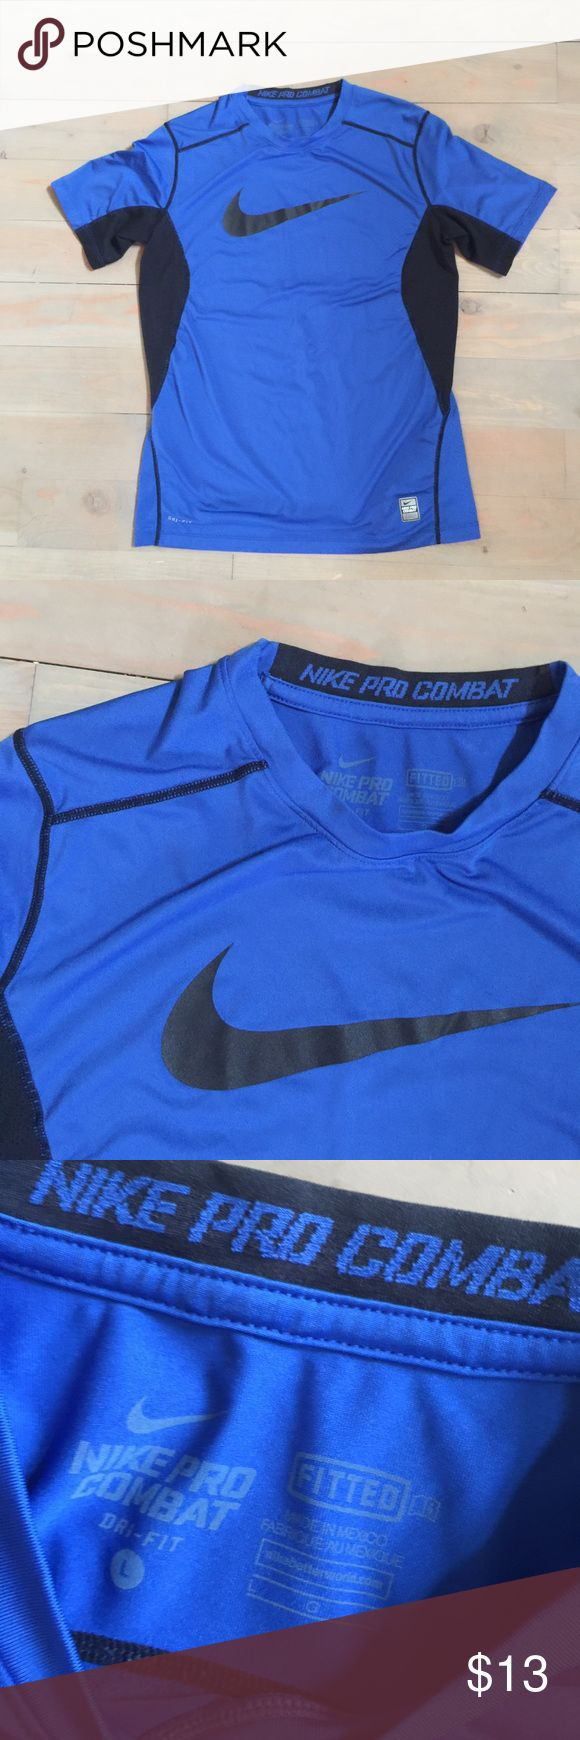 Boys NIKE Pro Combat Fitted Shirt Athletic Mesh Nike Combat Pro athletic shirt. Lightweight breathable fabric with mesh panels. Blue and black. Size Large - the tag doesn't say youth, but I'm positive it is. Excellent condition. Nike Shirts & Tops Tees - Short Sleeve